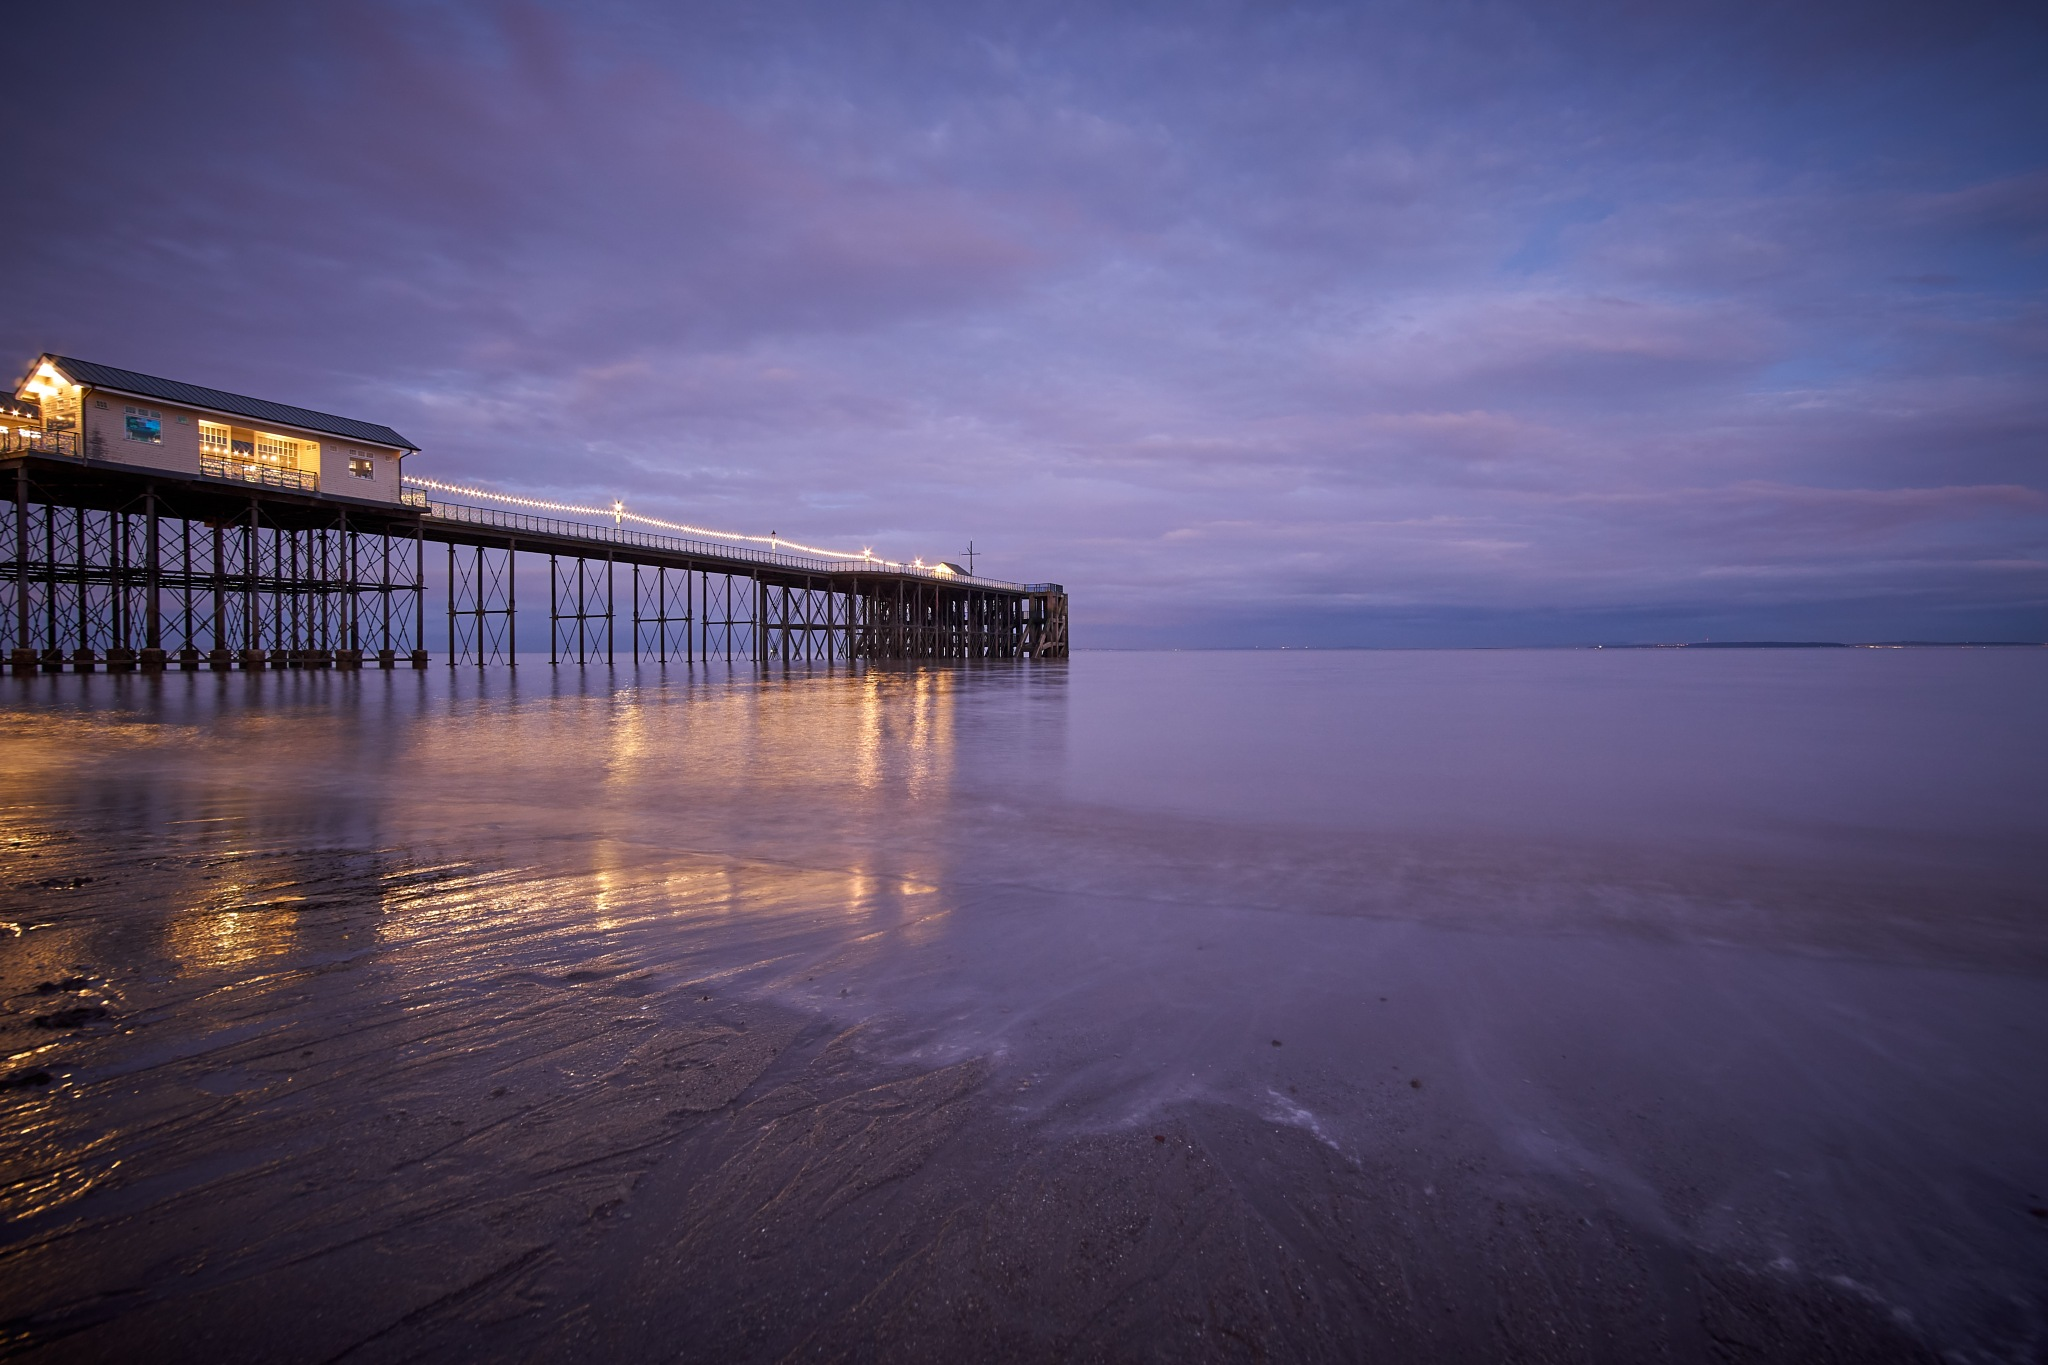 The Pier by Stephen L. Johnson